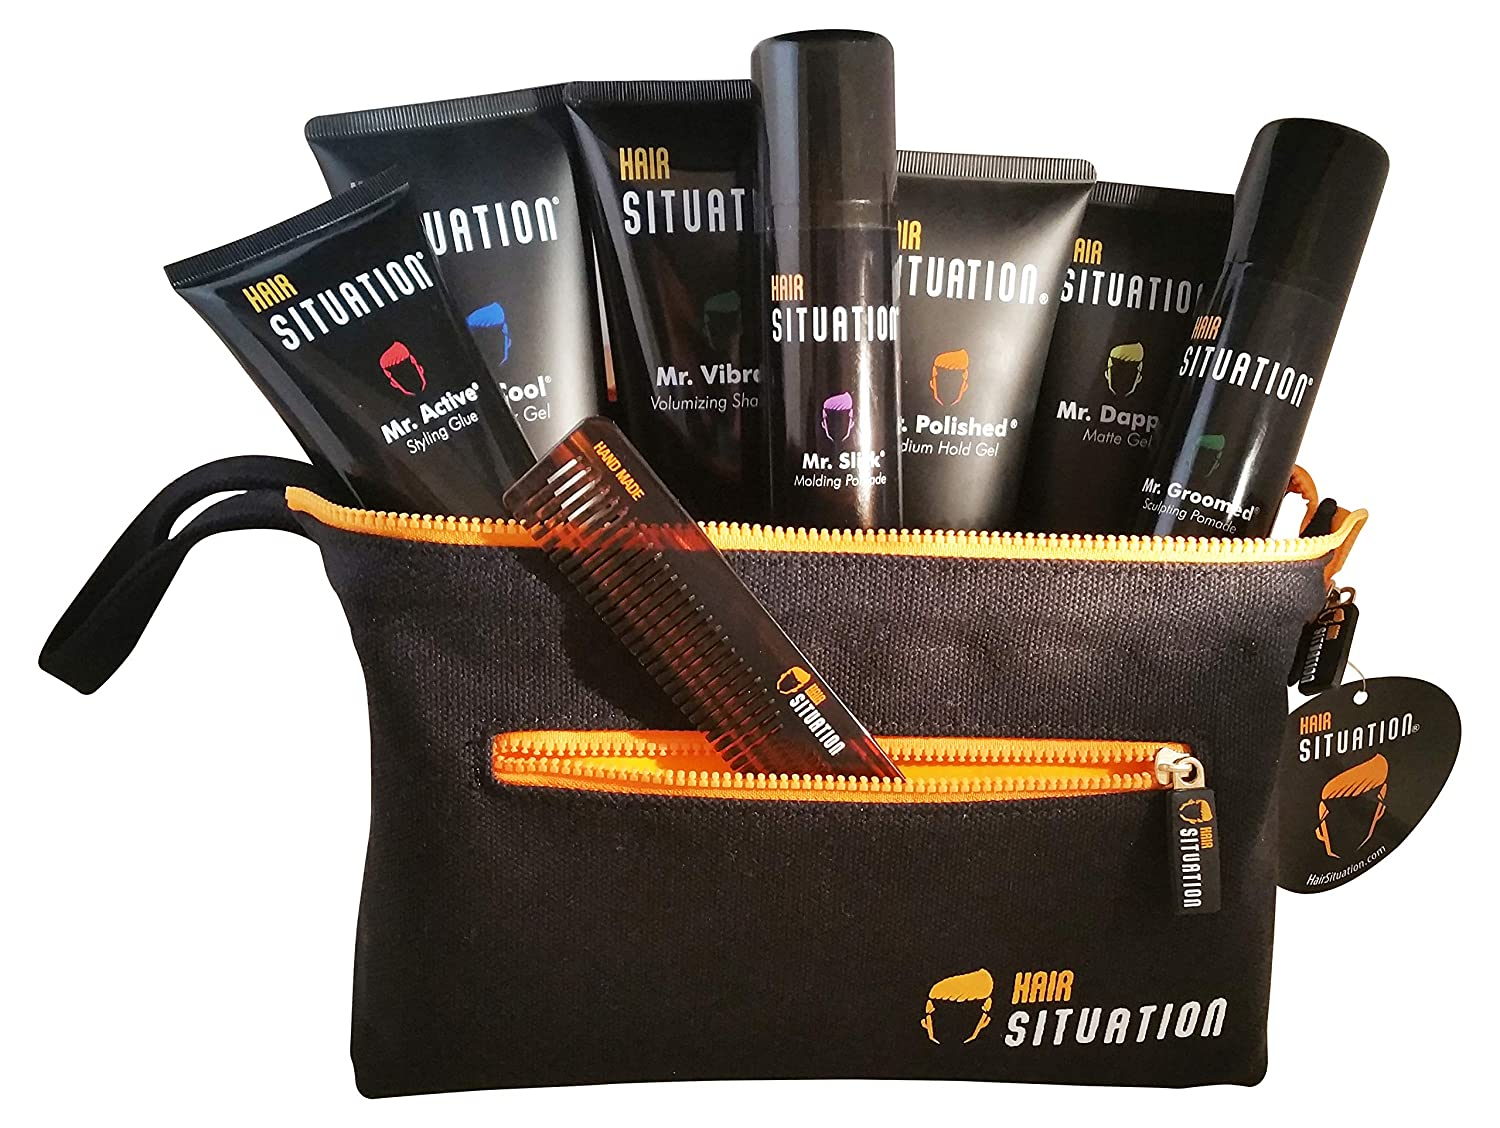 Hair Situation Grooming Set Gels, Pomade, Shampoo